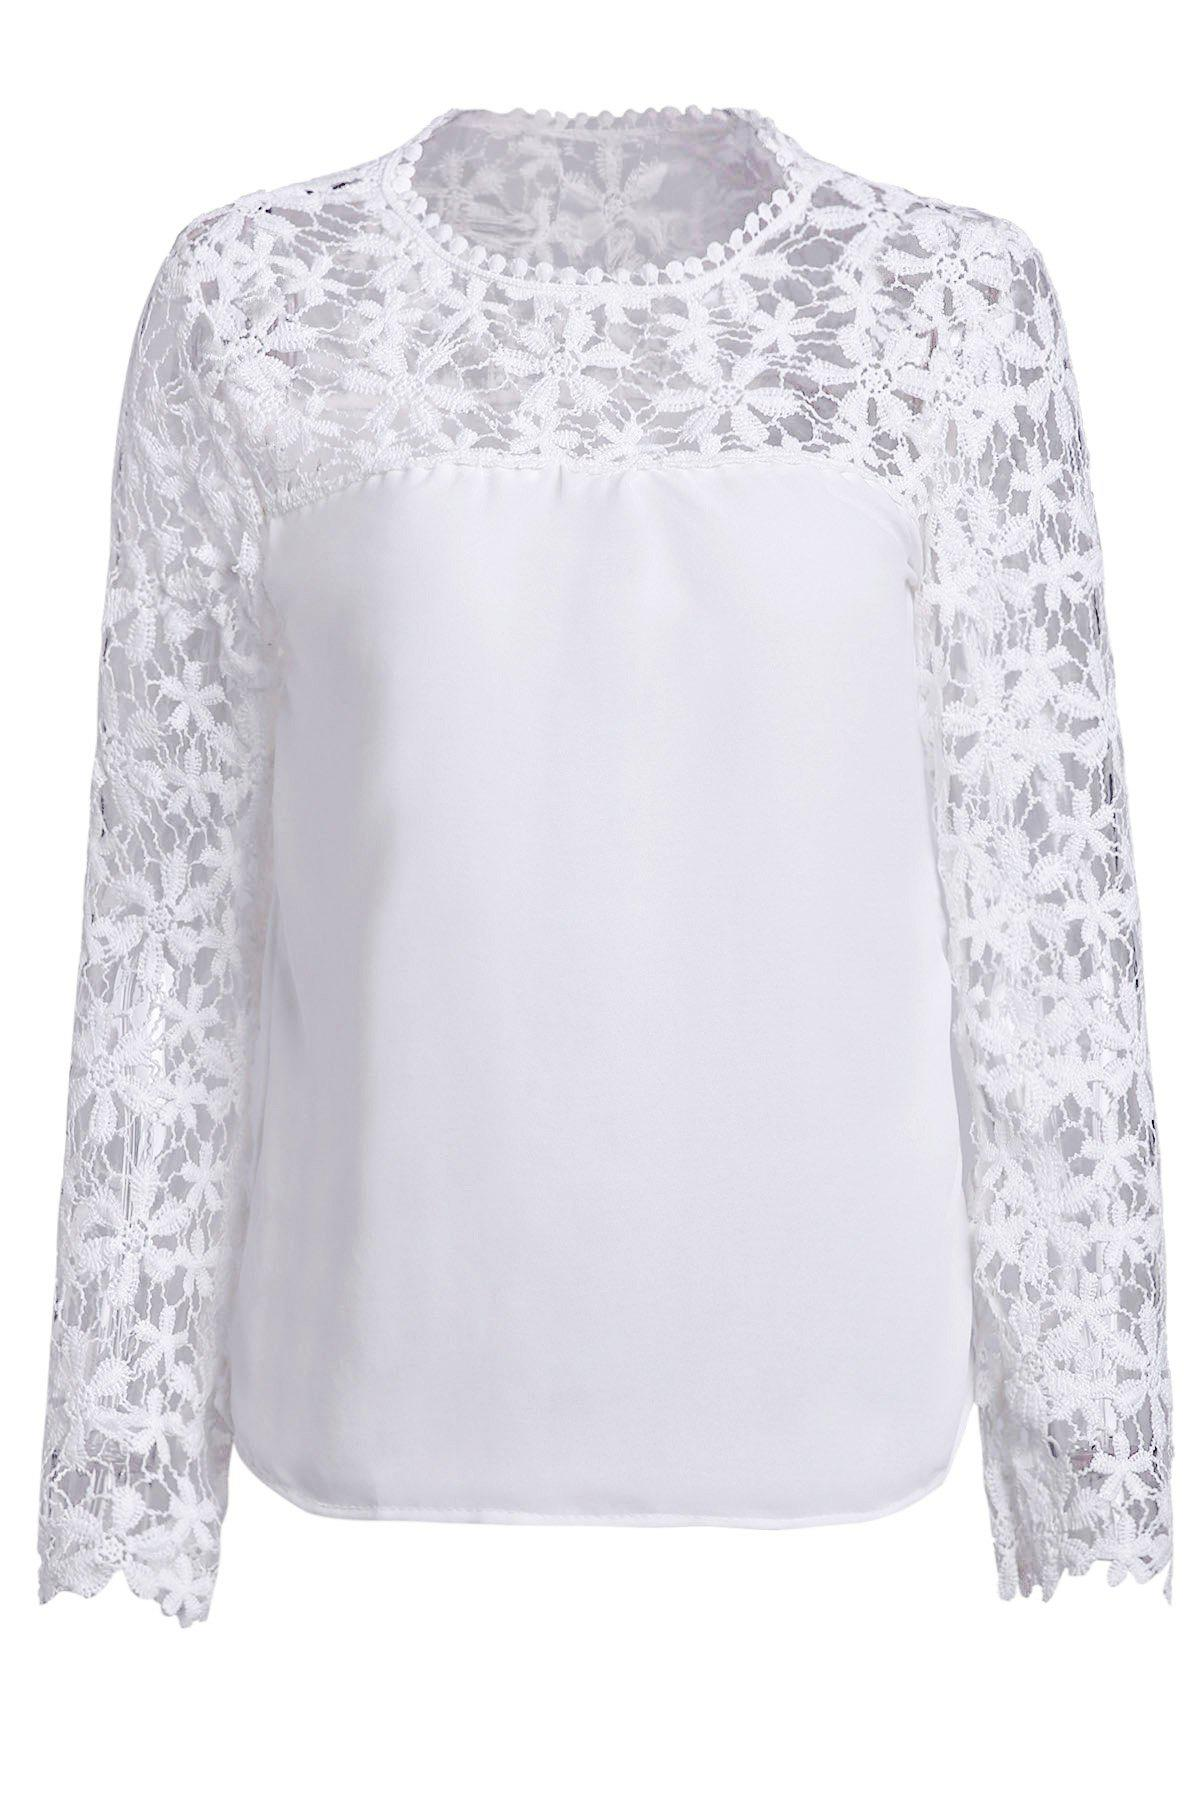 Stylish Scoop Neck Long Sleeve Crochet Flower Spliced Women's Blouse - WHITE 5XL